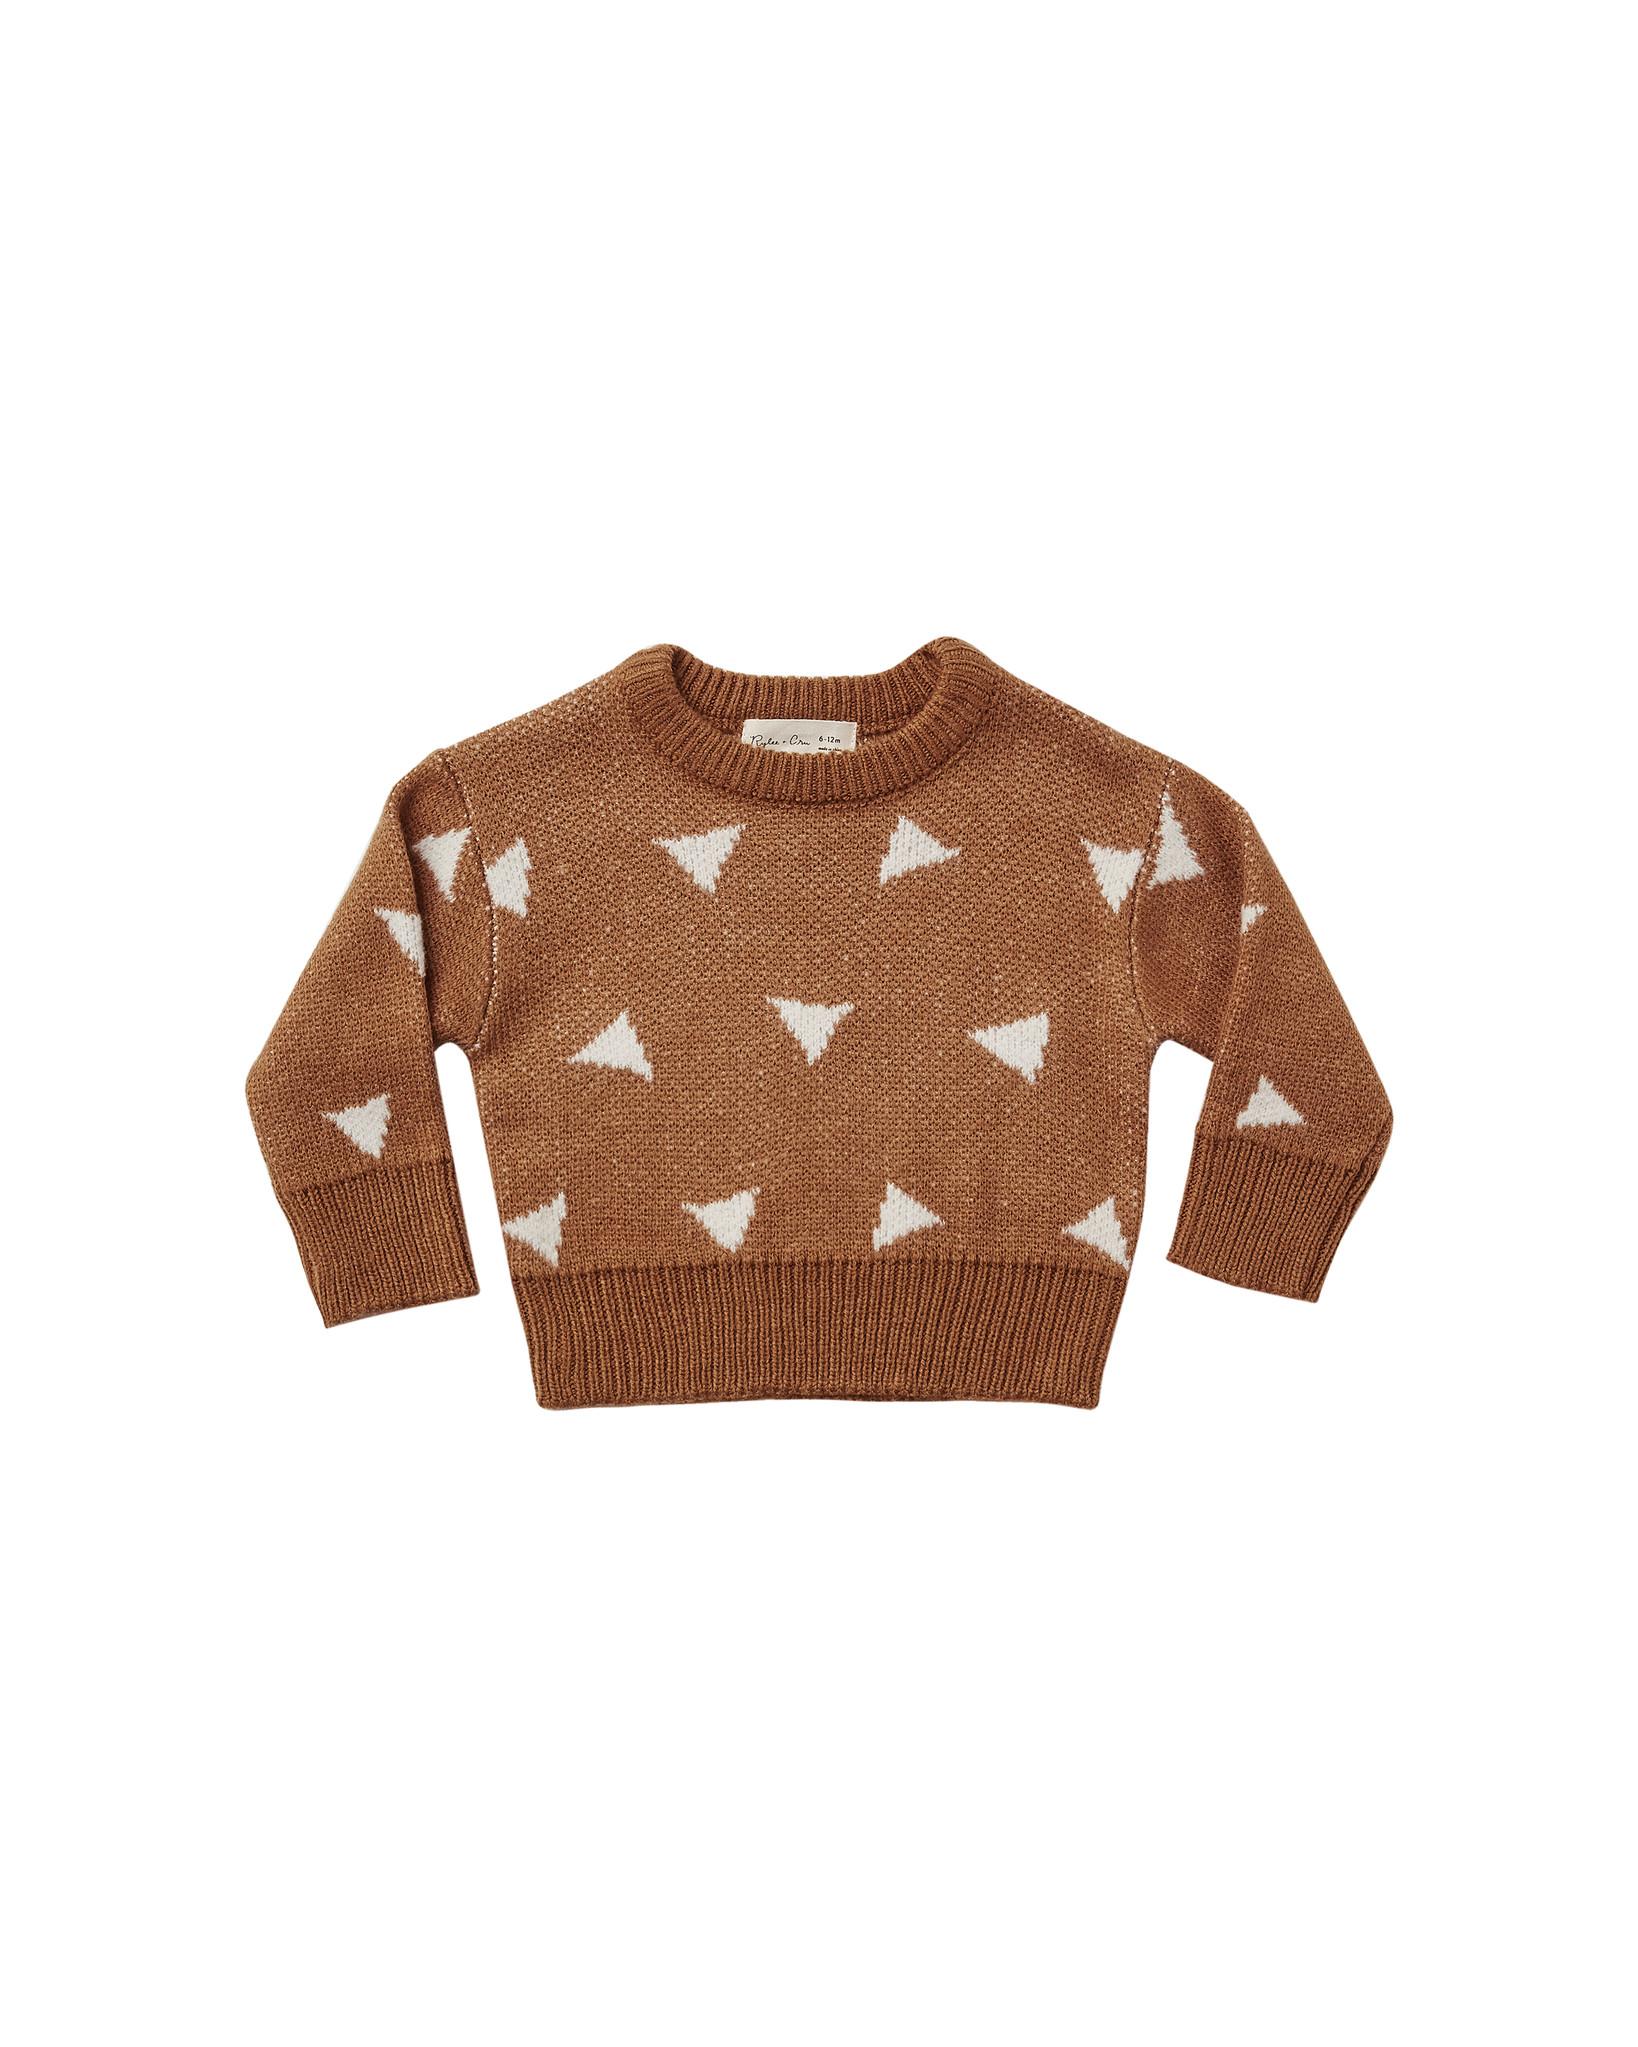 Rylee + Cru - RC RC BA - Triangles Knit Pullover in Rust